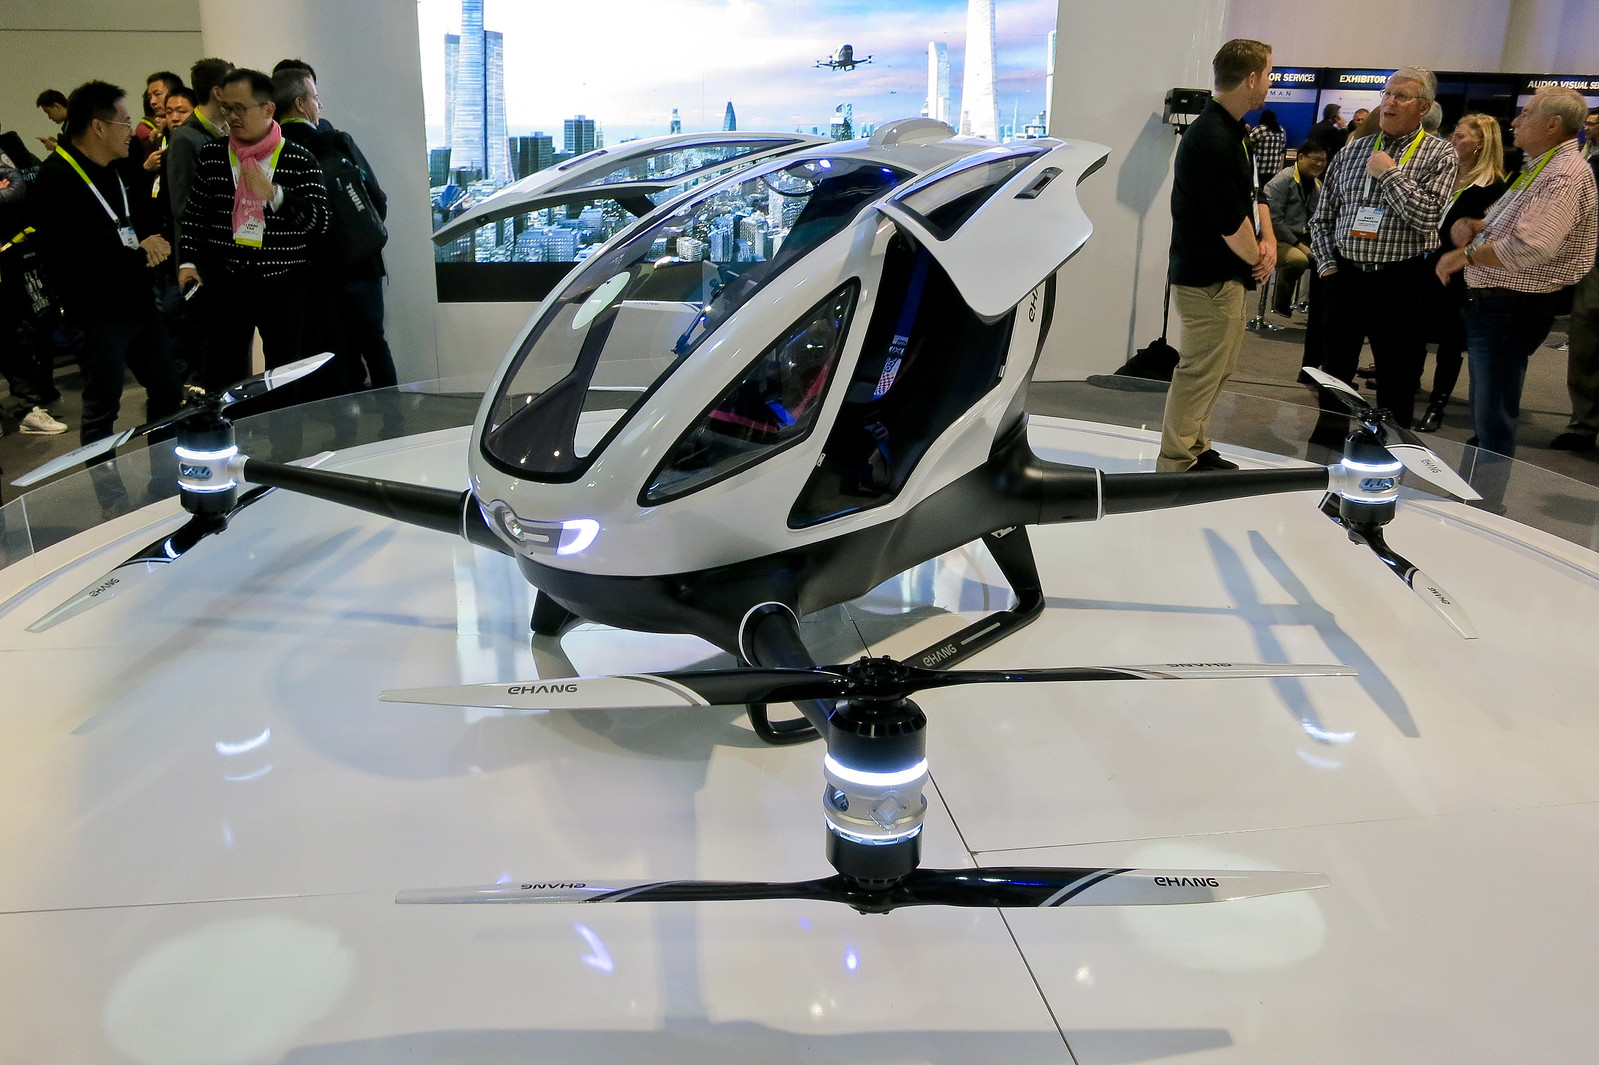 Ehang's passenger drone sales are taking off